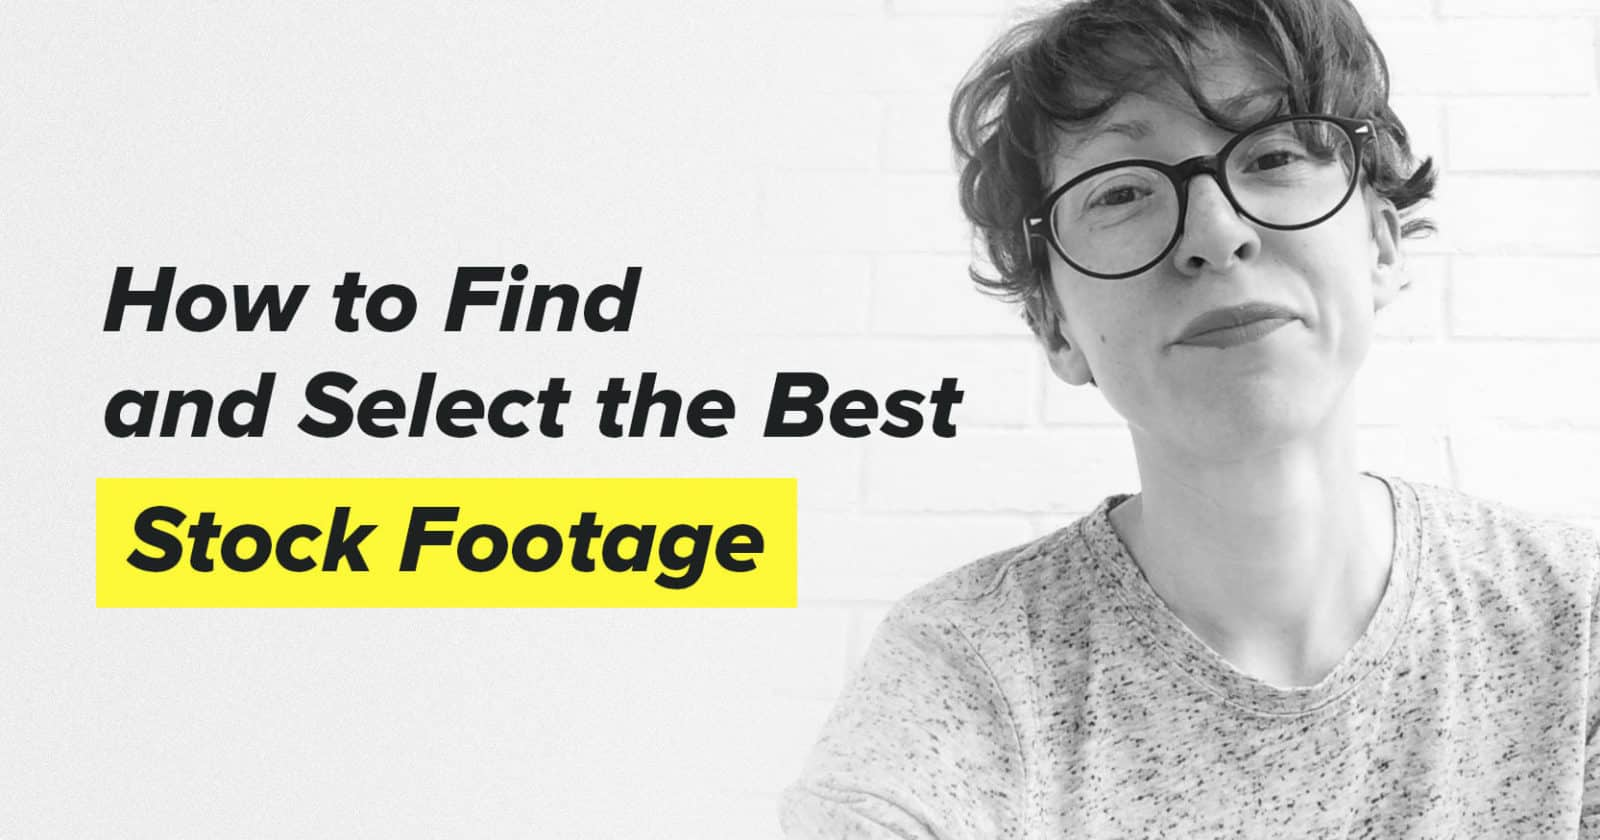 How to Find the Best Stock Footage